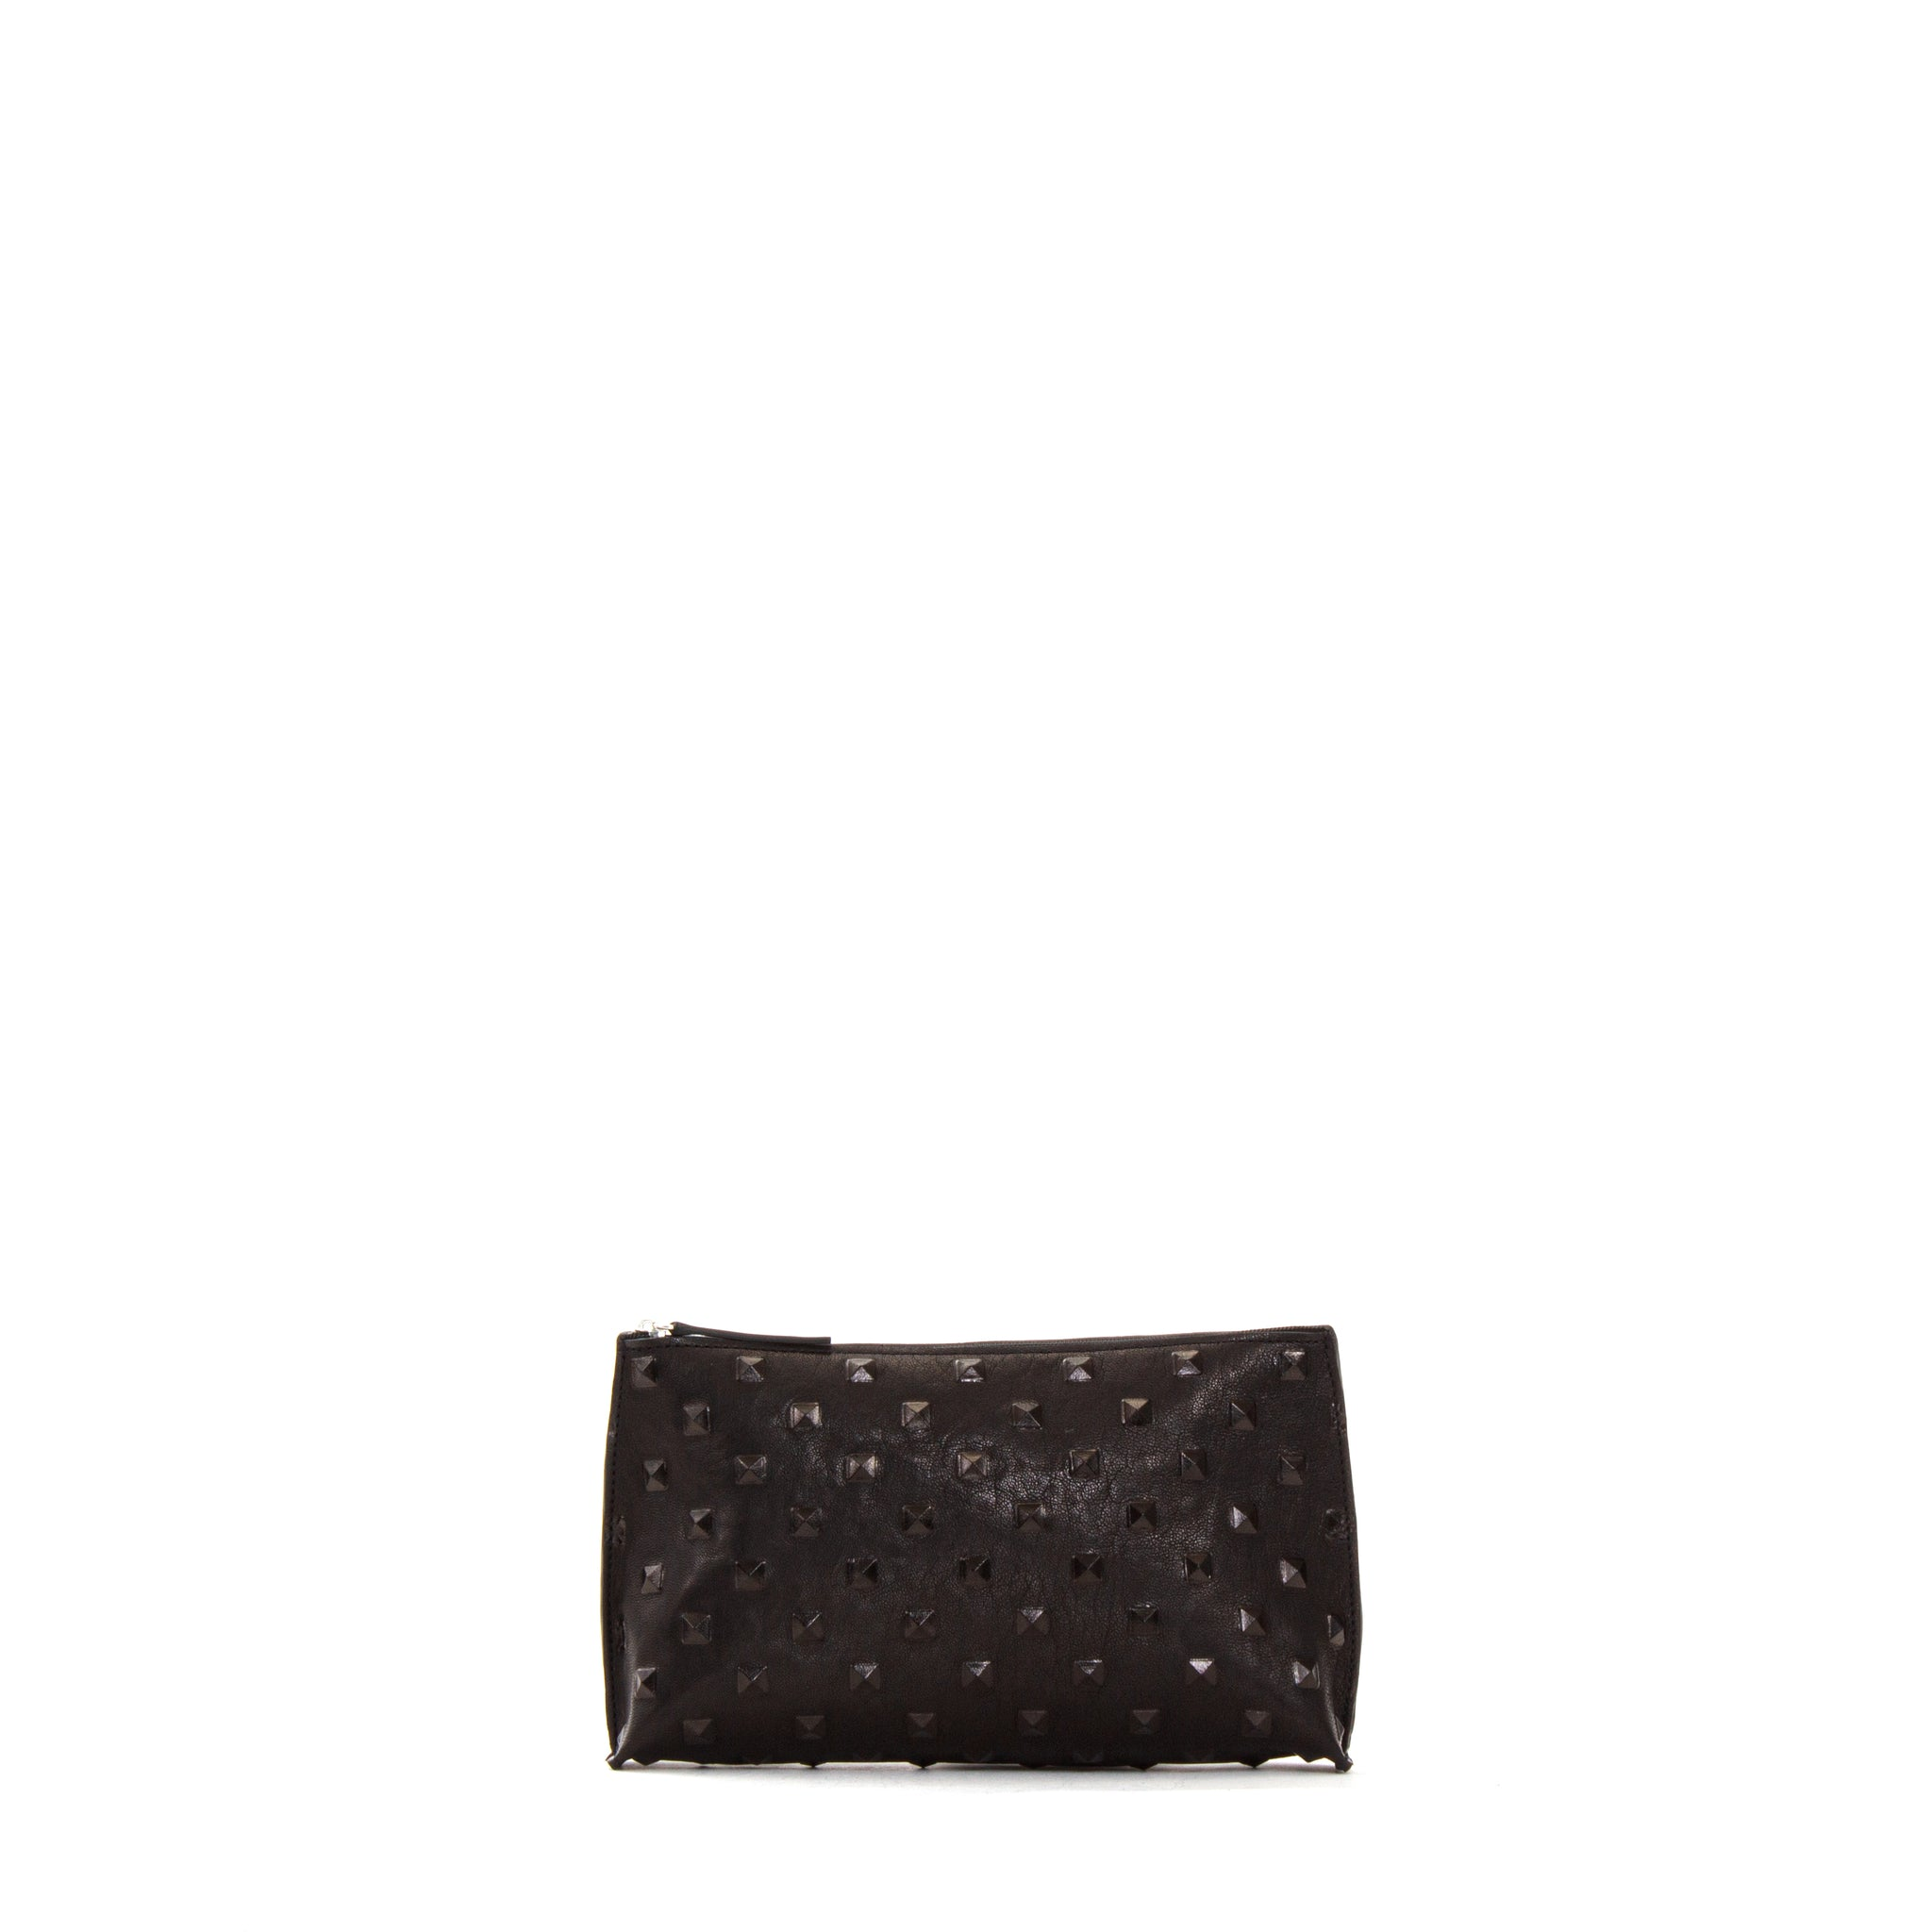 ESSENTIAL POUCH BLACK STUD